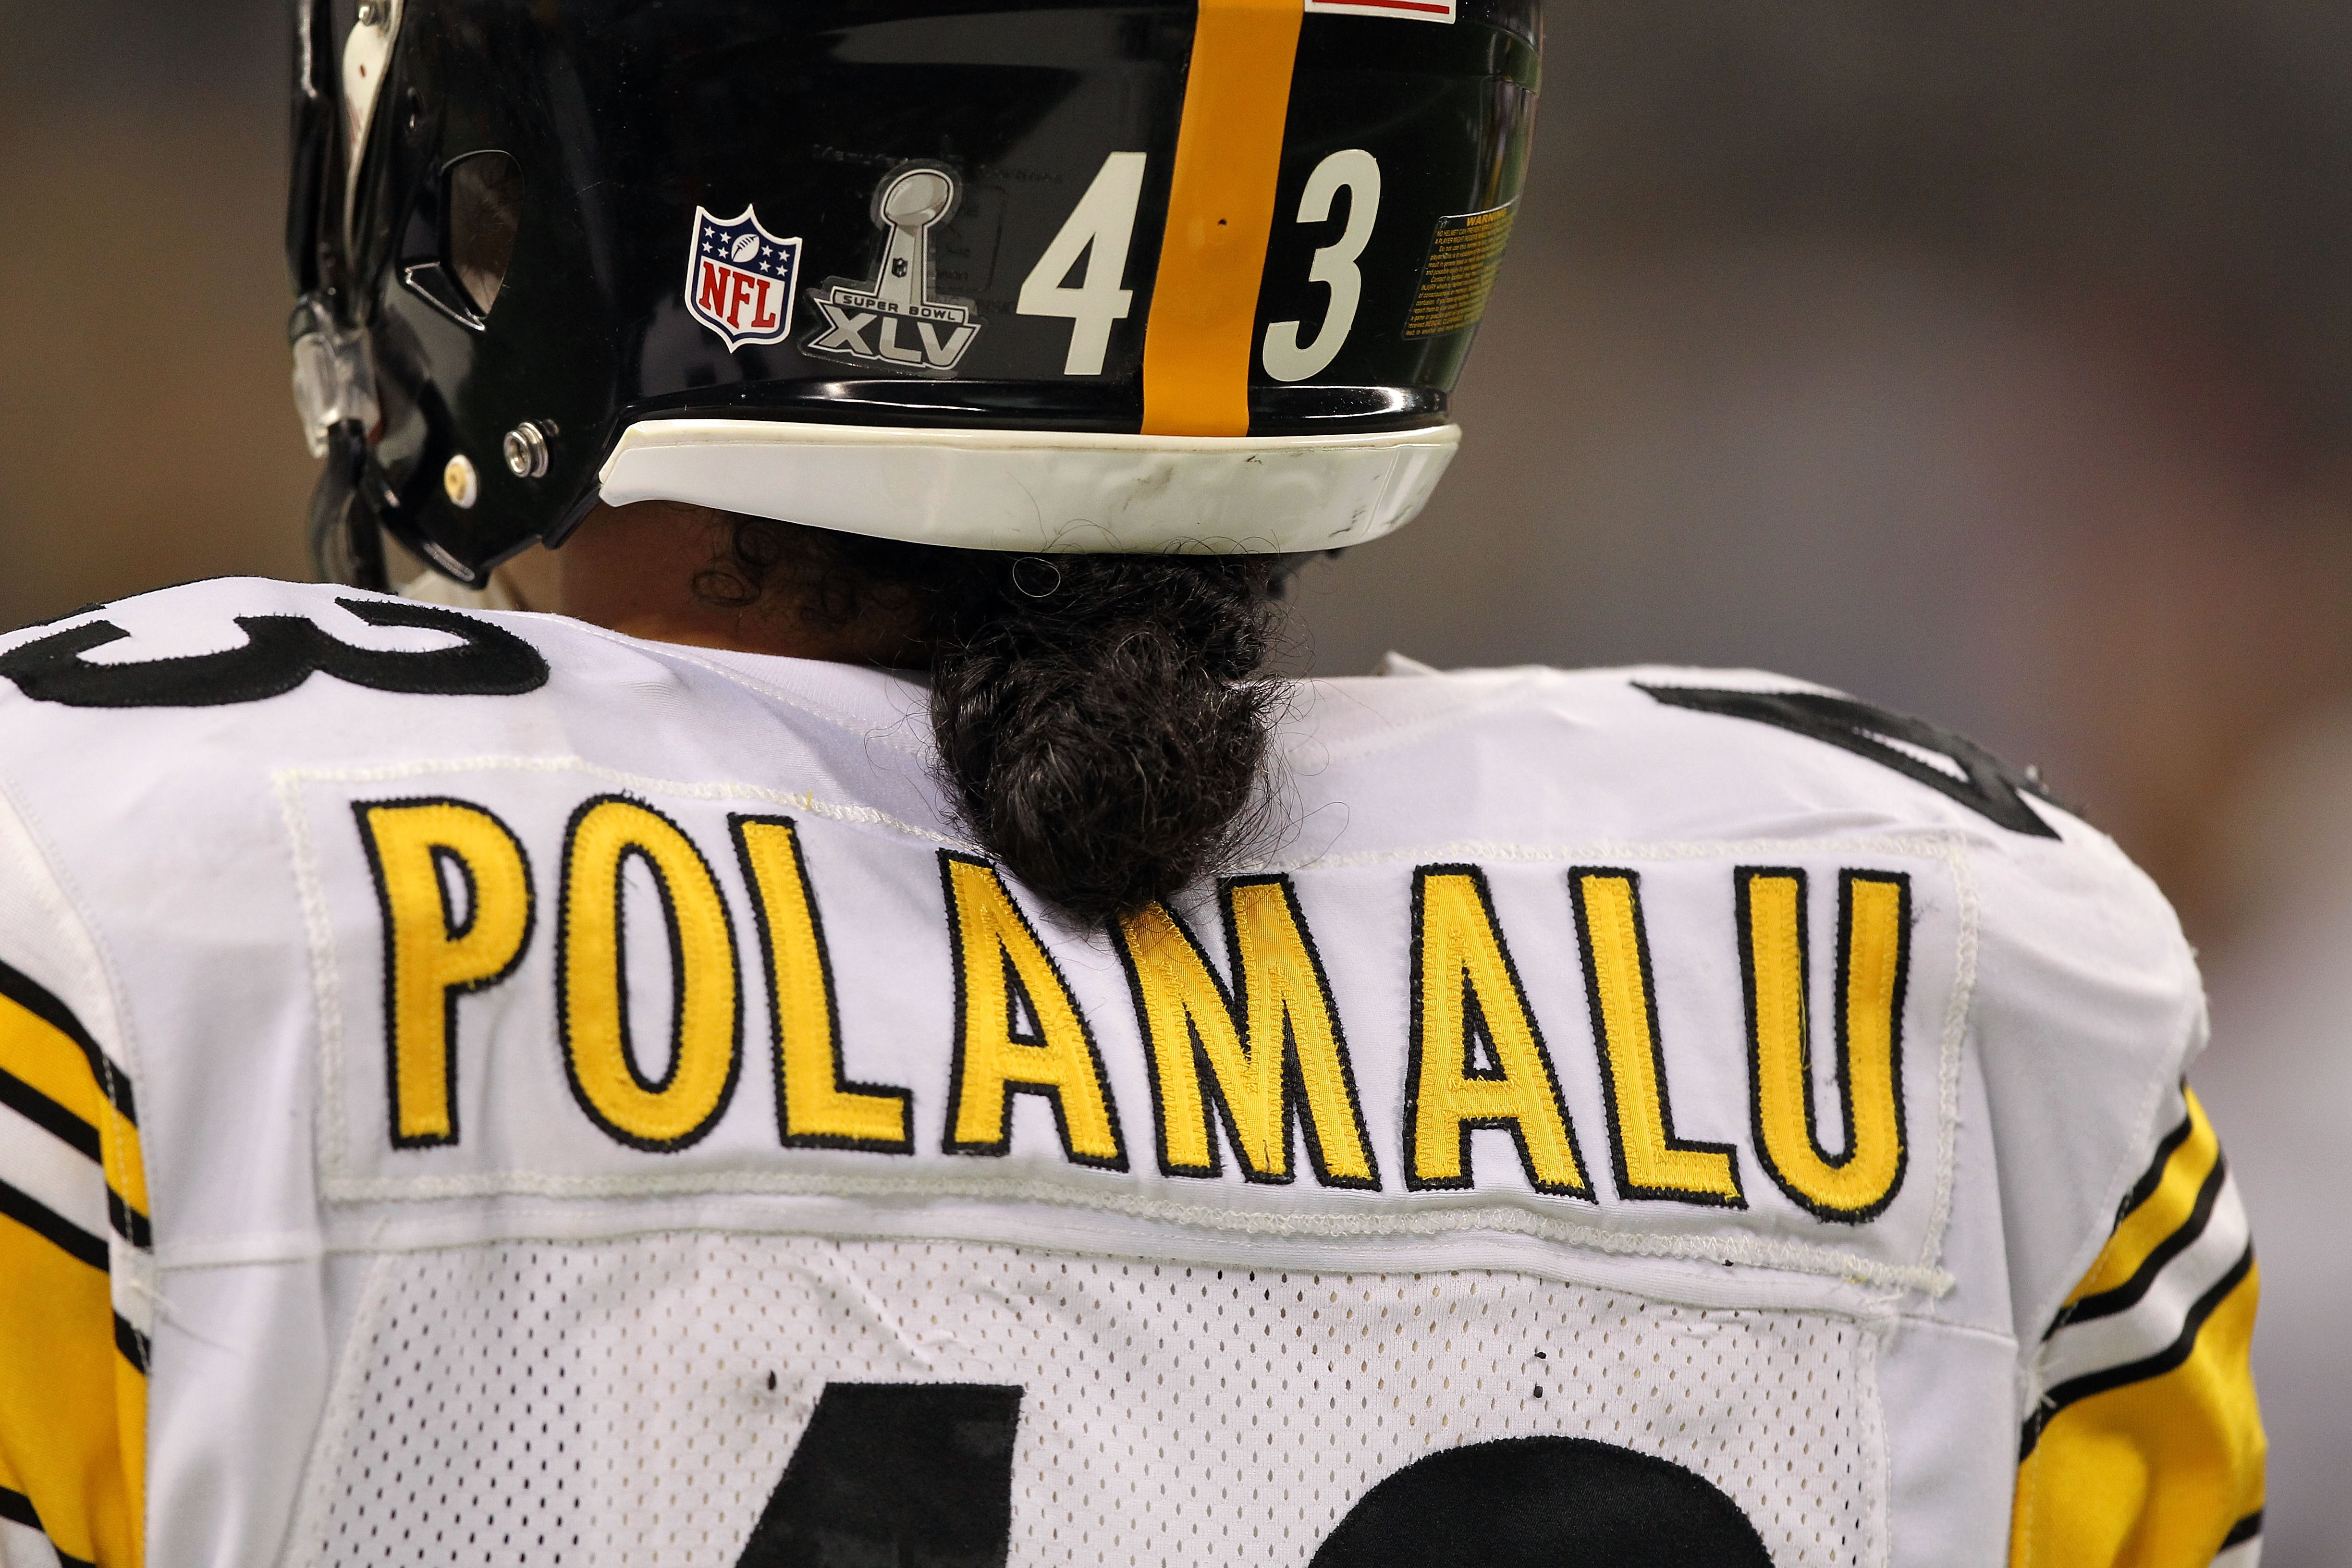 ARLINGTON, TX - FEBRUARY 06:  A detail of the back of the jersey of Troy Polamalu #43 of the Pittsburgh Steelers against the Green Bay Packers during Super Bowl XLV at Cowboys Stadium on February 6, 2011 in Arlington, Texas.  (Photo by Al Bello/Getty Imag